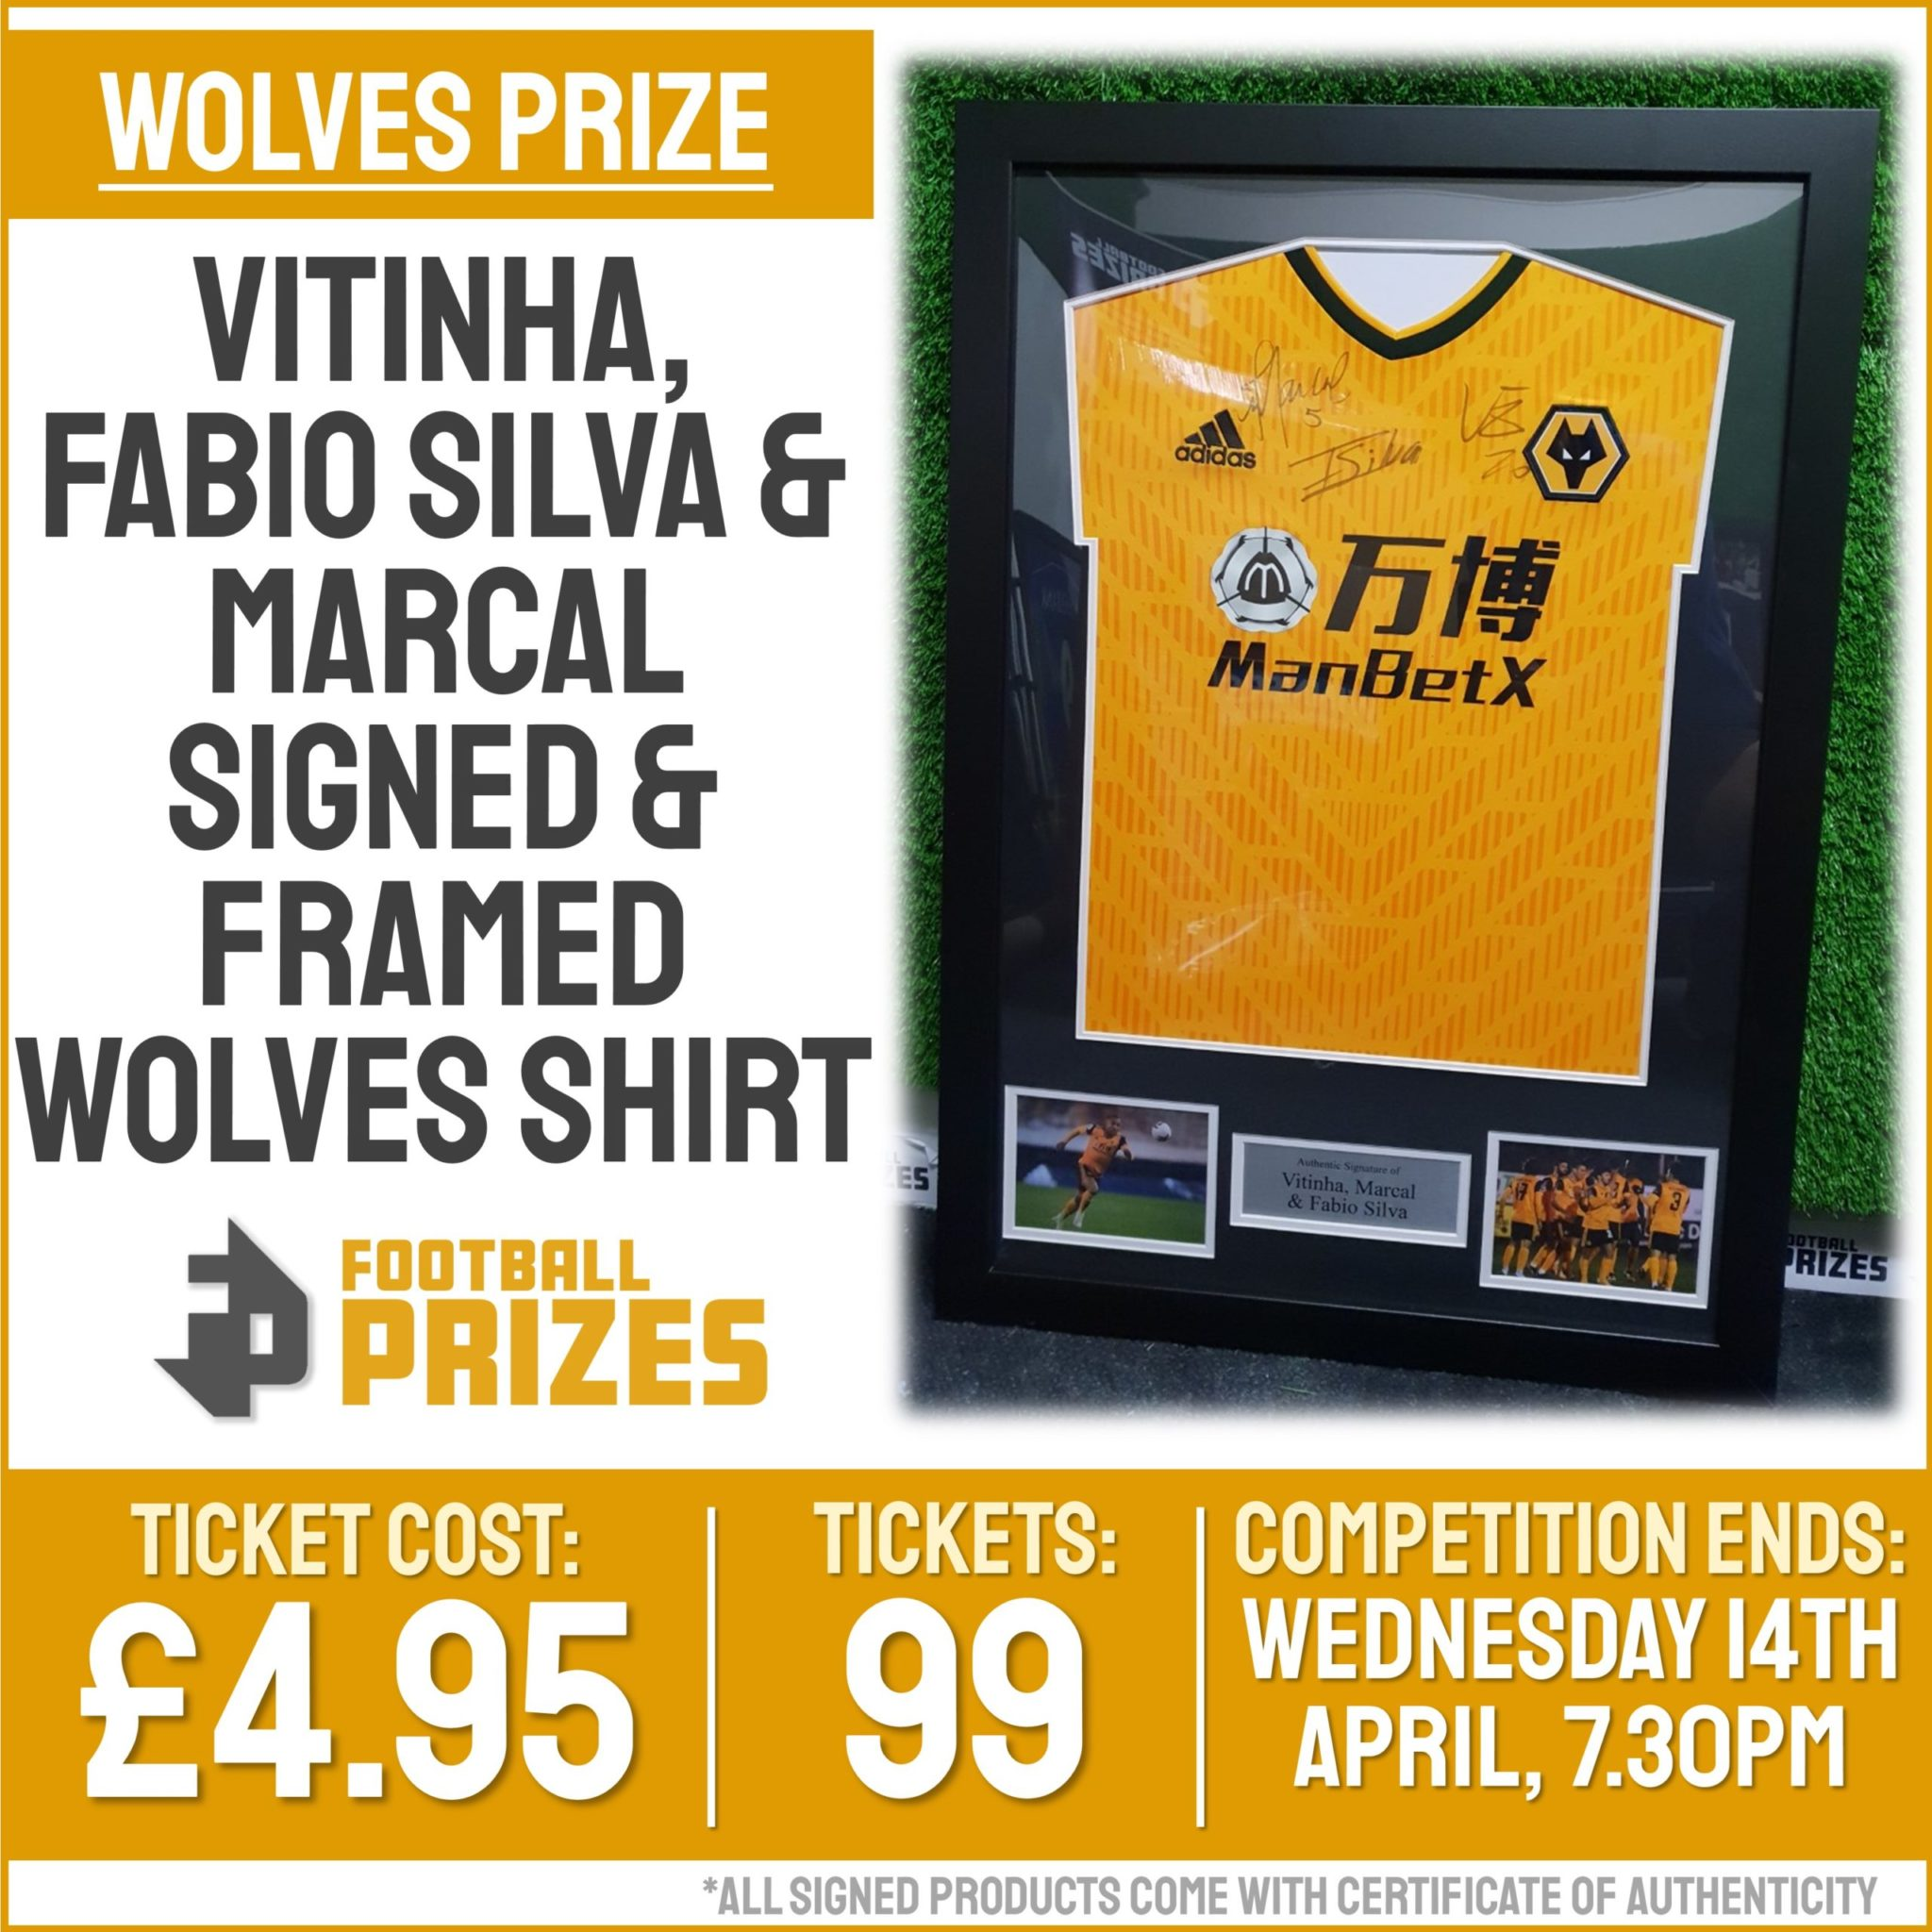 Ends today at 7.30pm! Vitinha, Fabio Silva & Marcal Signed & Framed Wolves Shirt